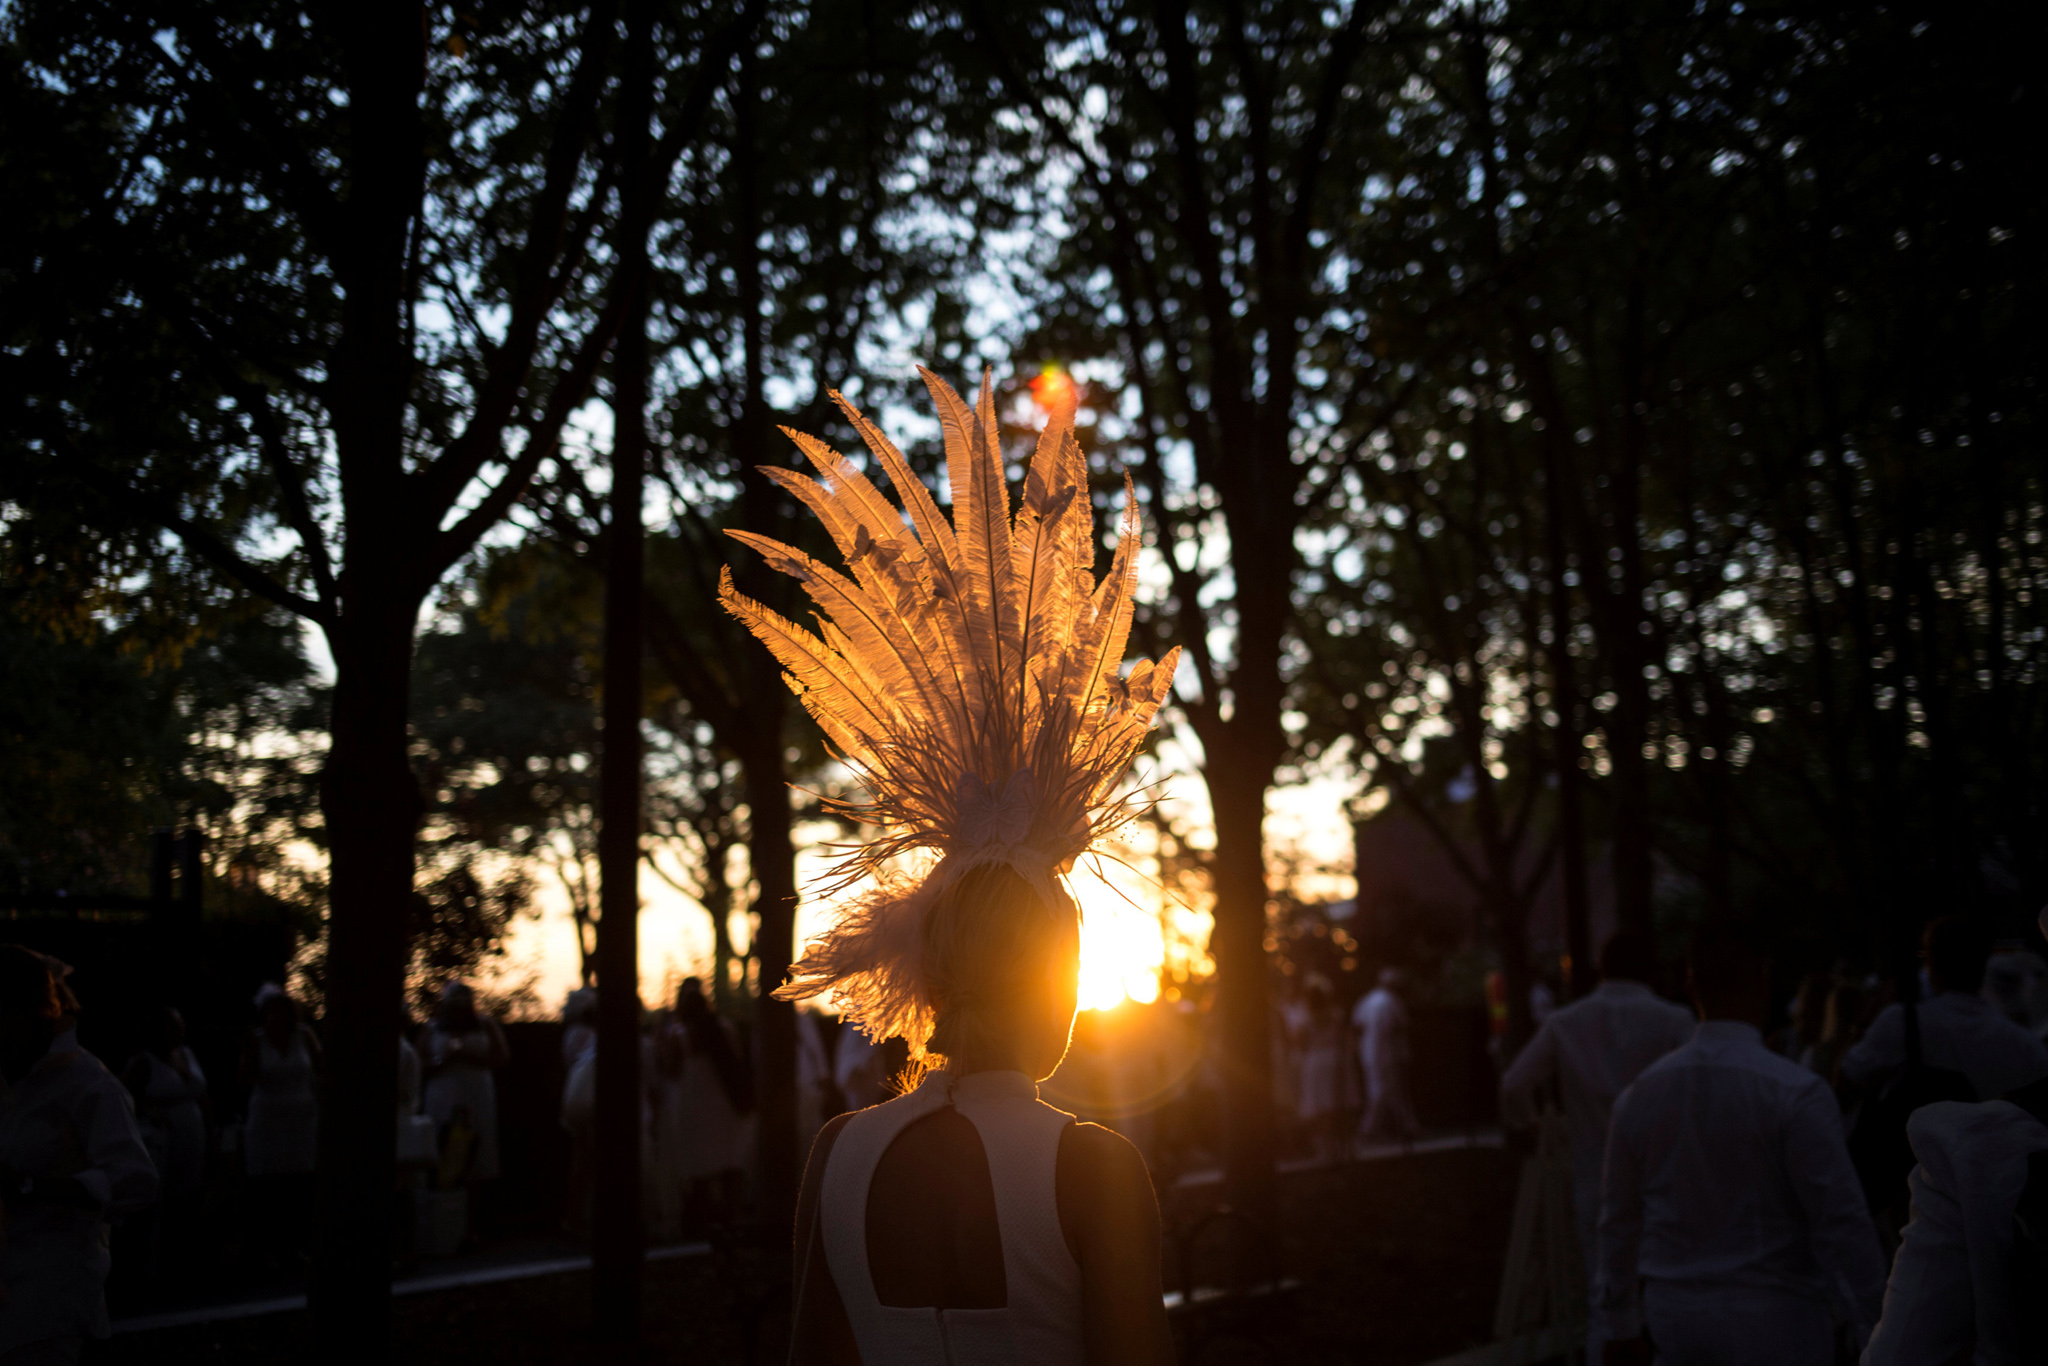 People attend Diner En Blanc, the French-inspired secret pop-up dinner, in Robert F. Wagner Jr. Park, in New York, U.S